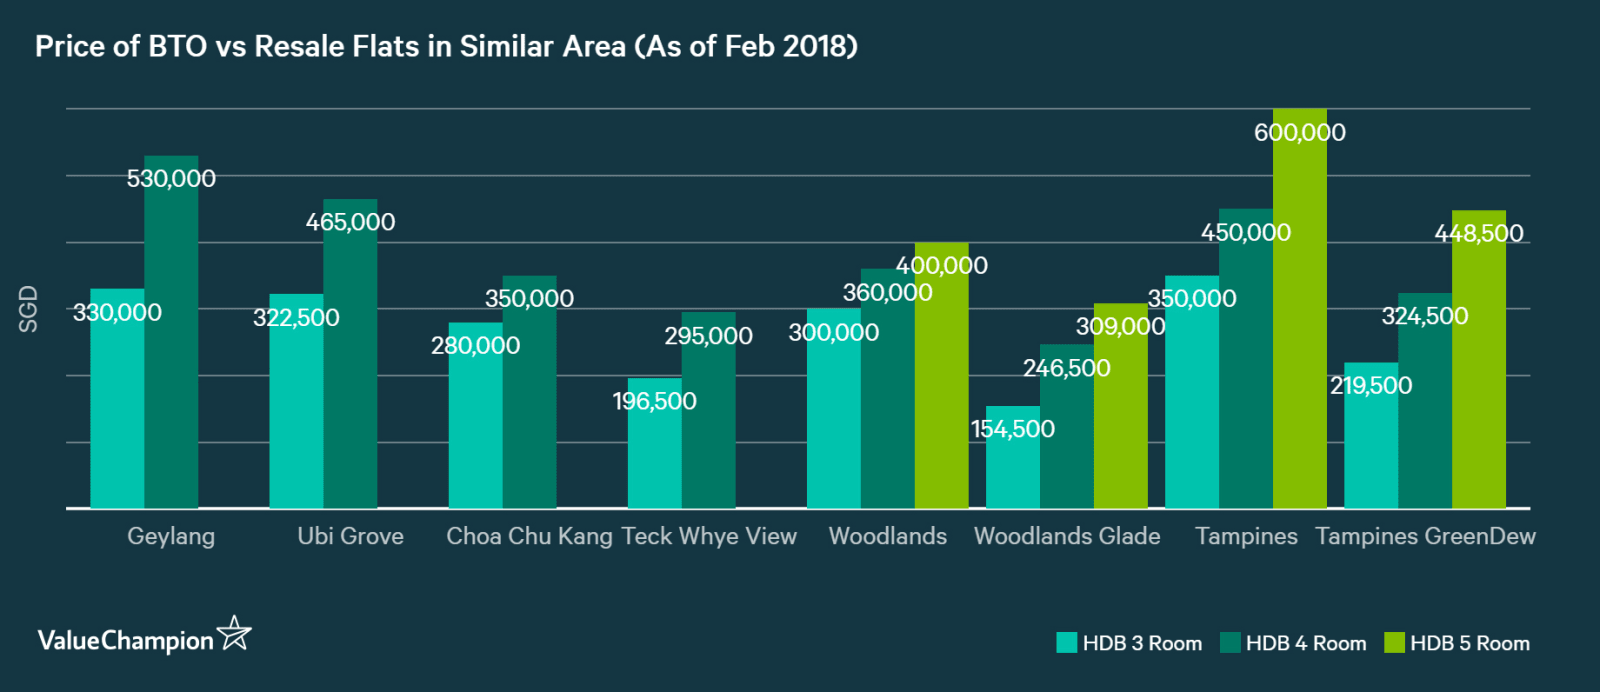 price of BTO vs resale flat in Singapore by area